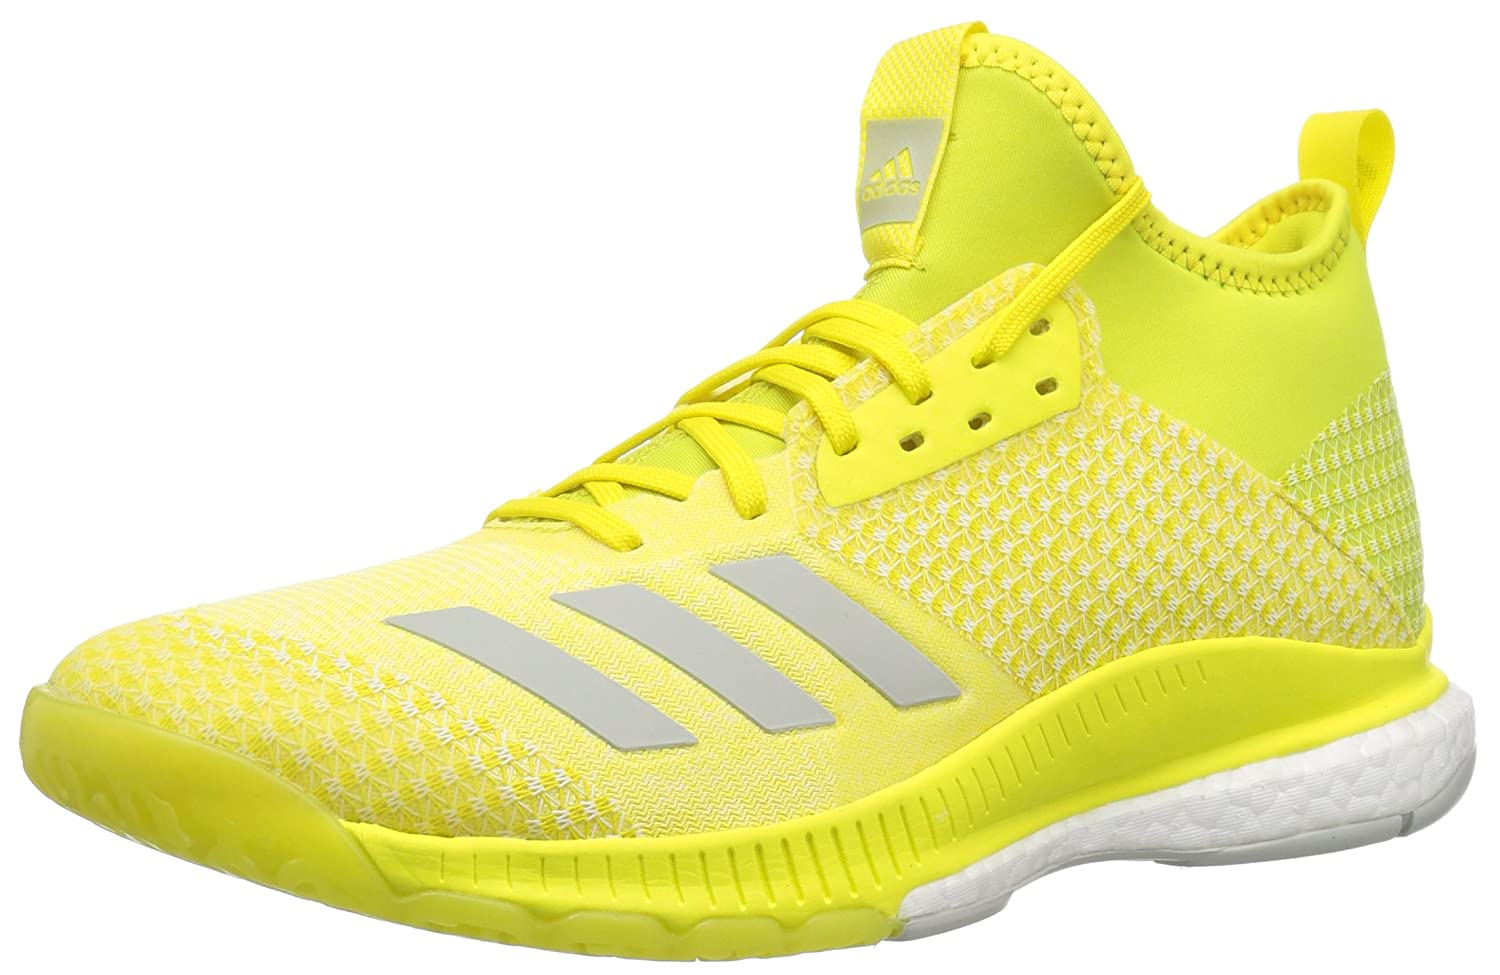 Shock Yellow Ash Silver White 10 B(M) US Adidas Womens Crazyflight X 2 Mid Volleyball shoes